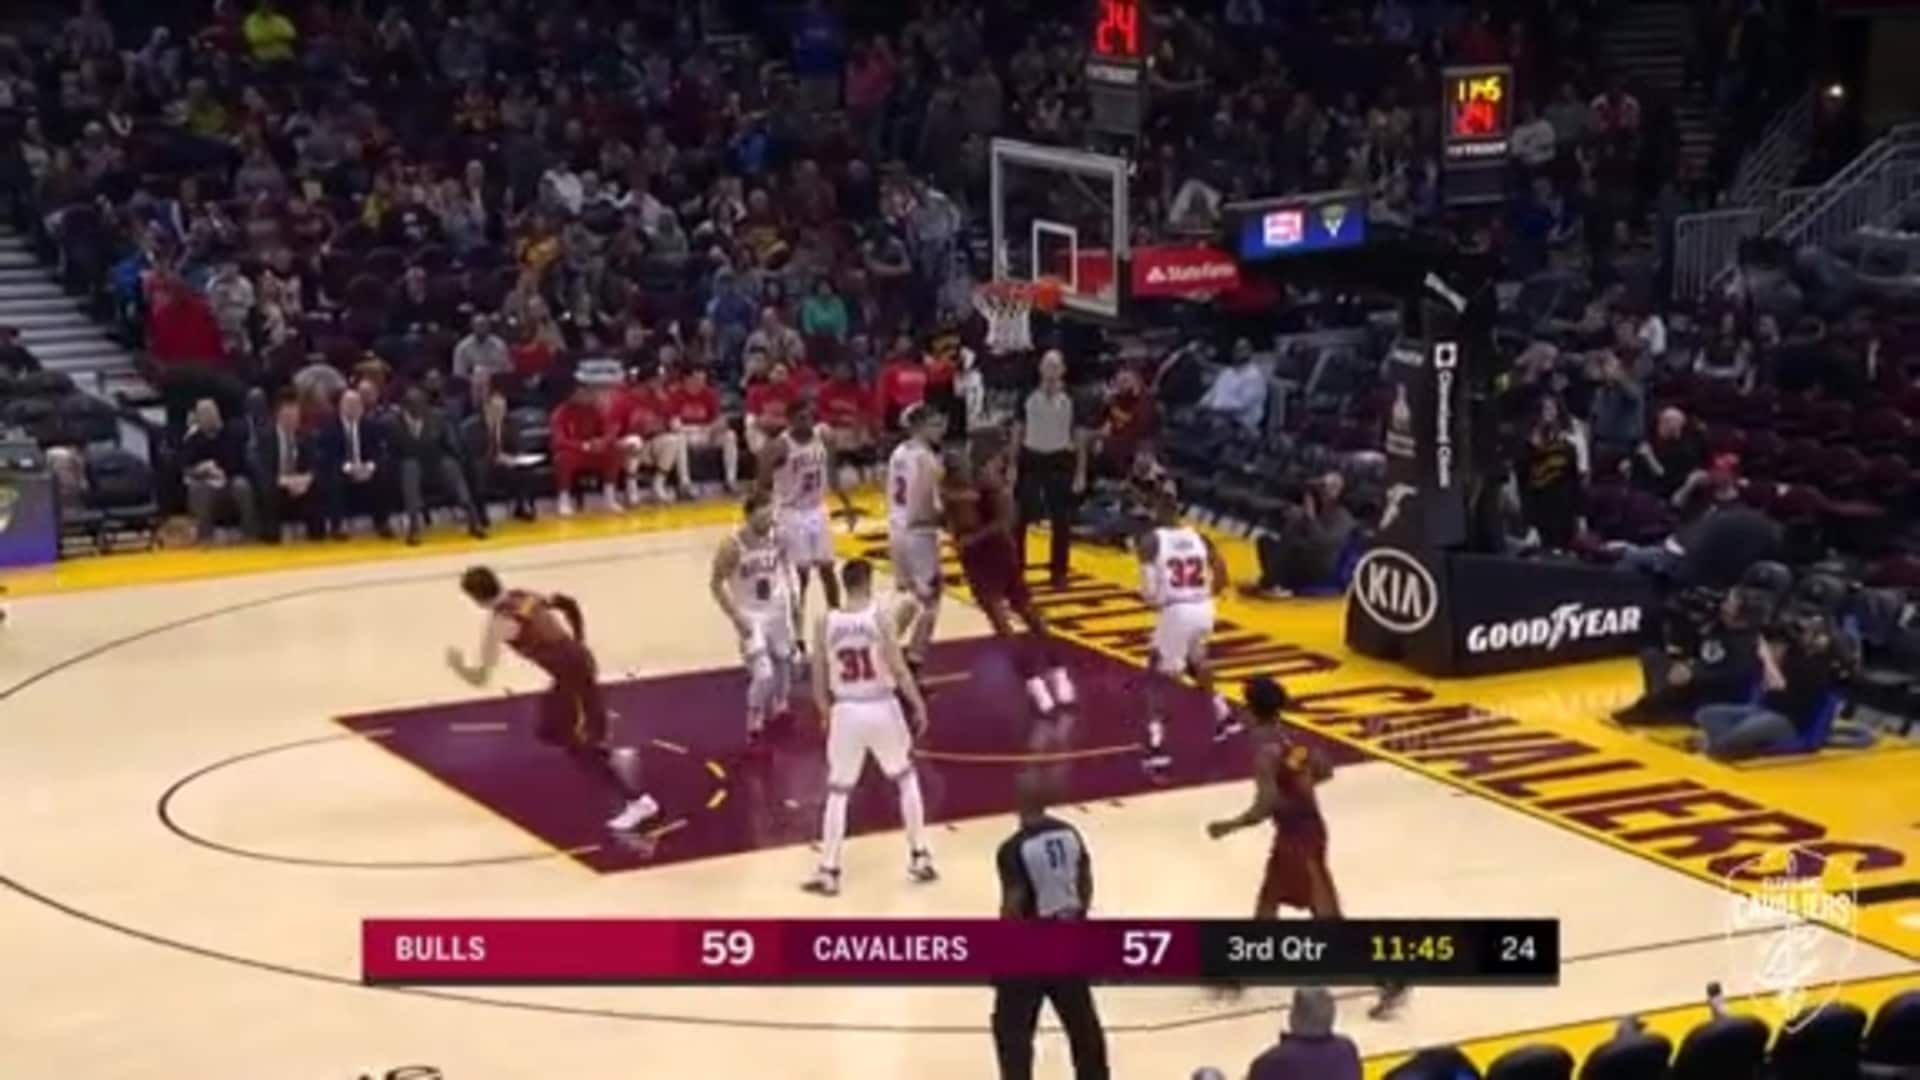 Cedi Sets Up the Ally-Oop to Tristan